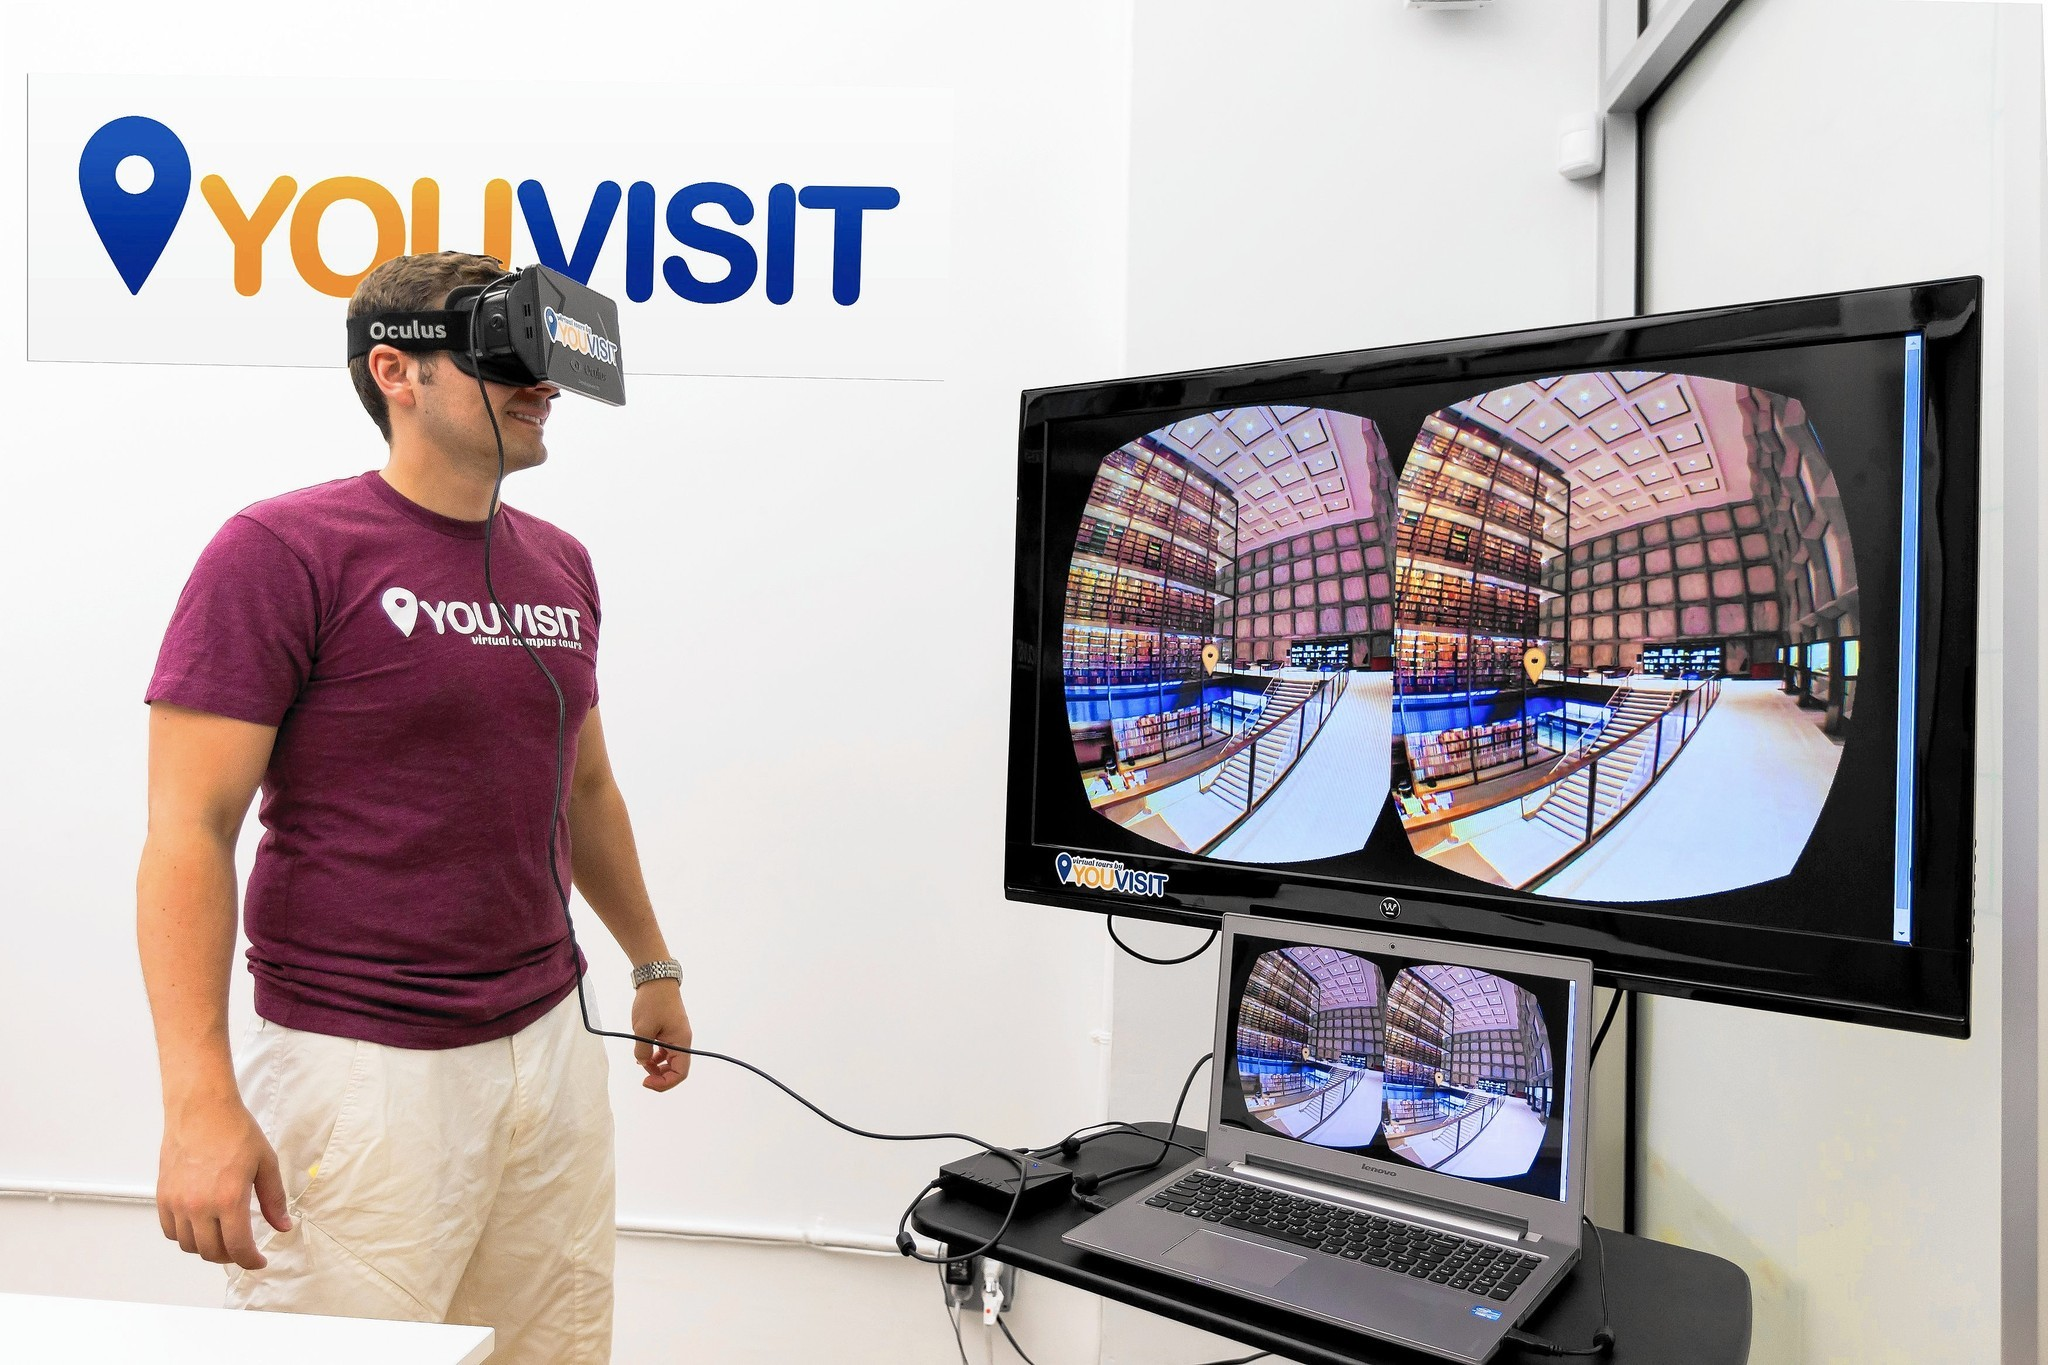 Colleges look to virtual reality tours to enhance recruiting - Los Angeles Times